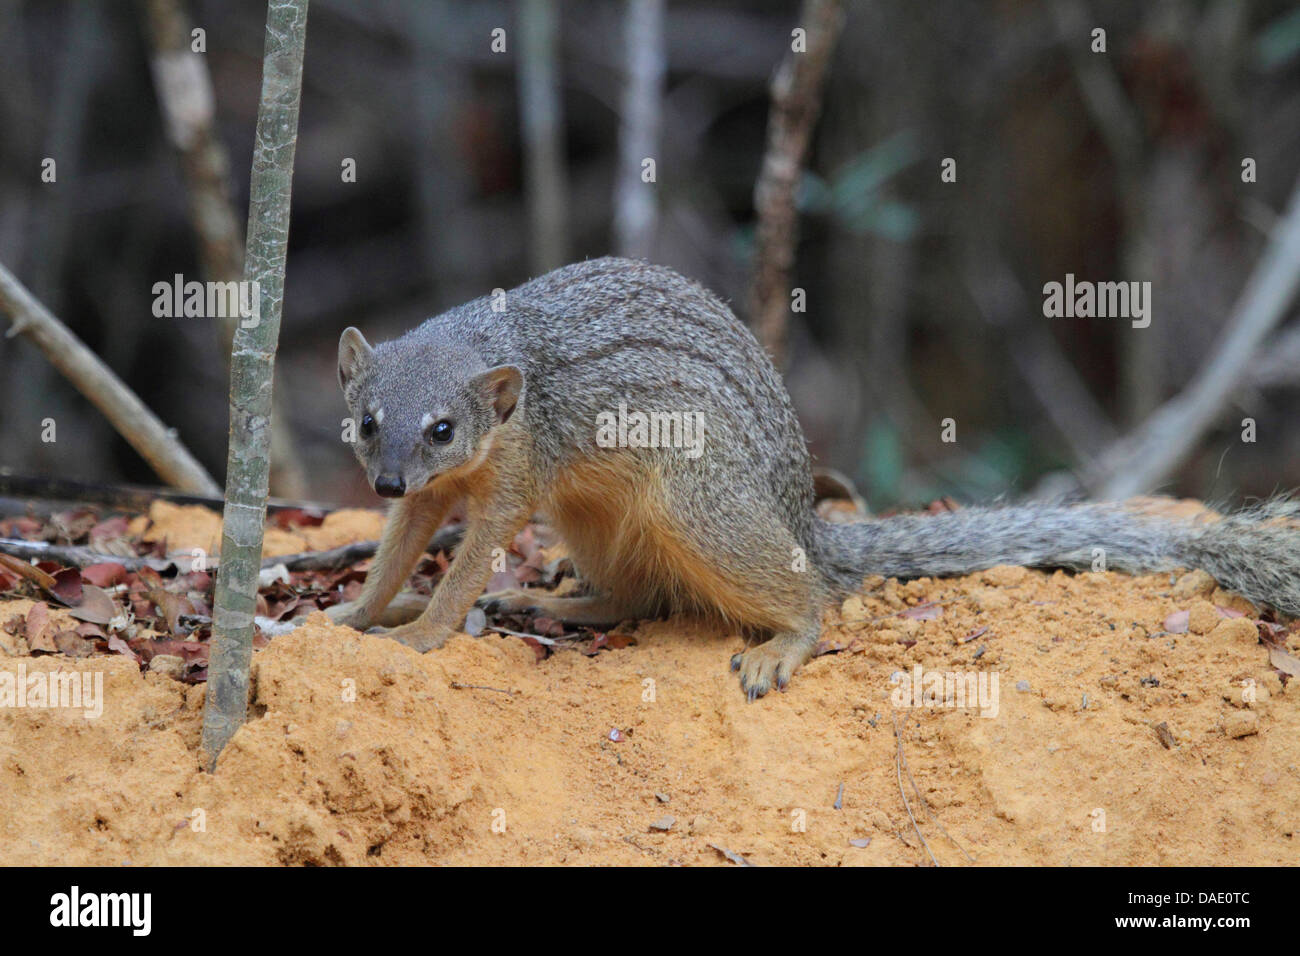 Narrow-striped mongoose, Malagasy narrow-striped mongoose (Mungotictis decemlineata), Mongoose sitting on sand hill - Stock Image